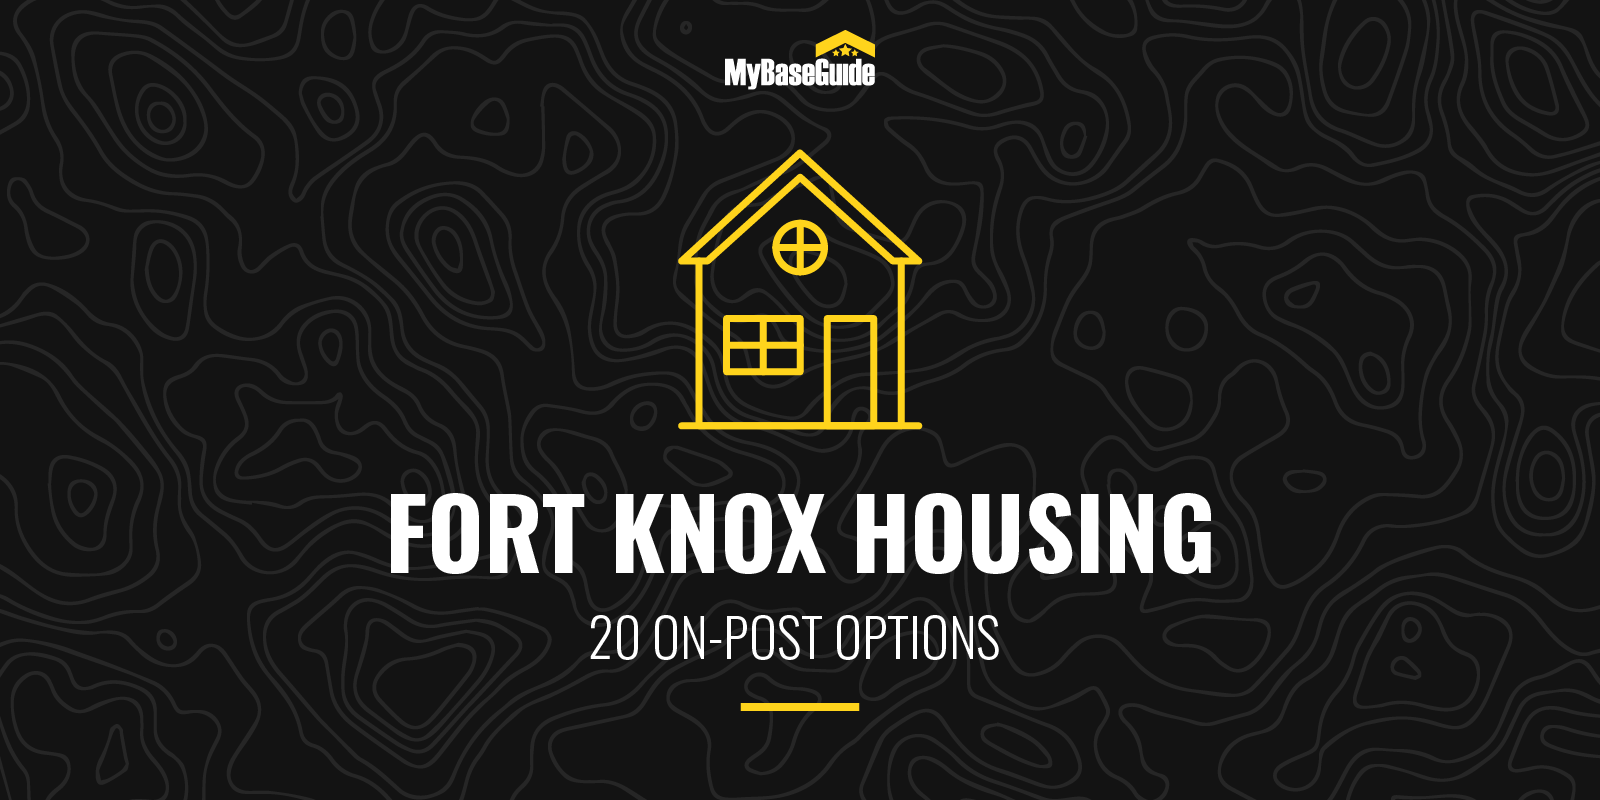 Fort Knox Housing Options